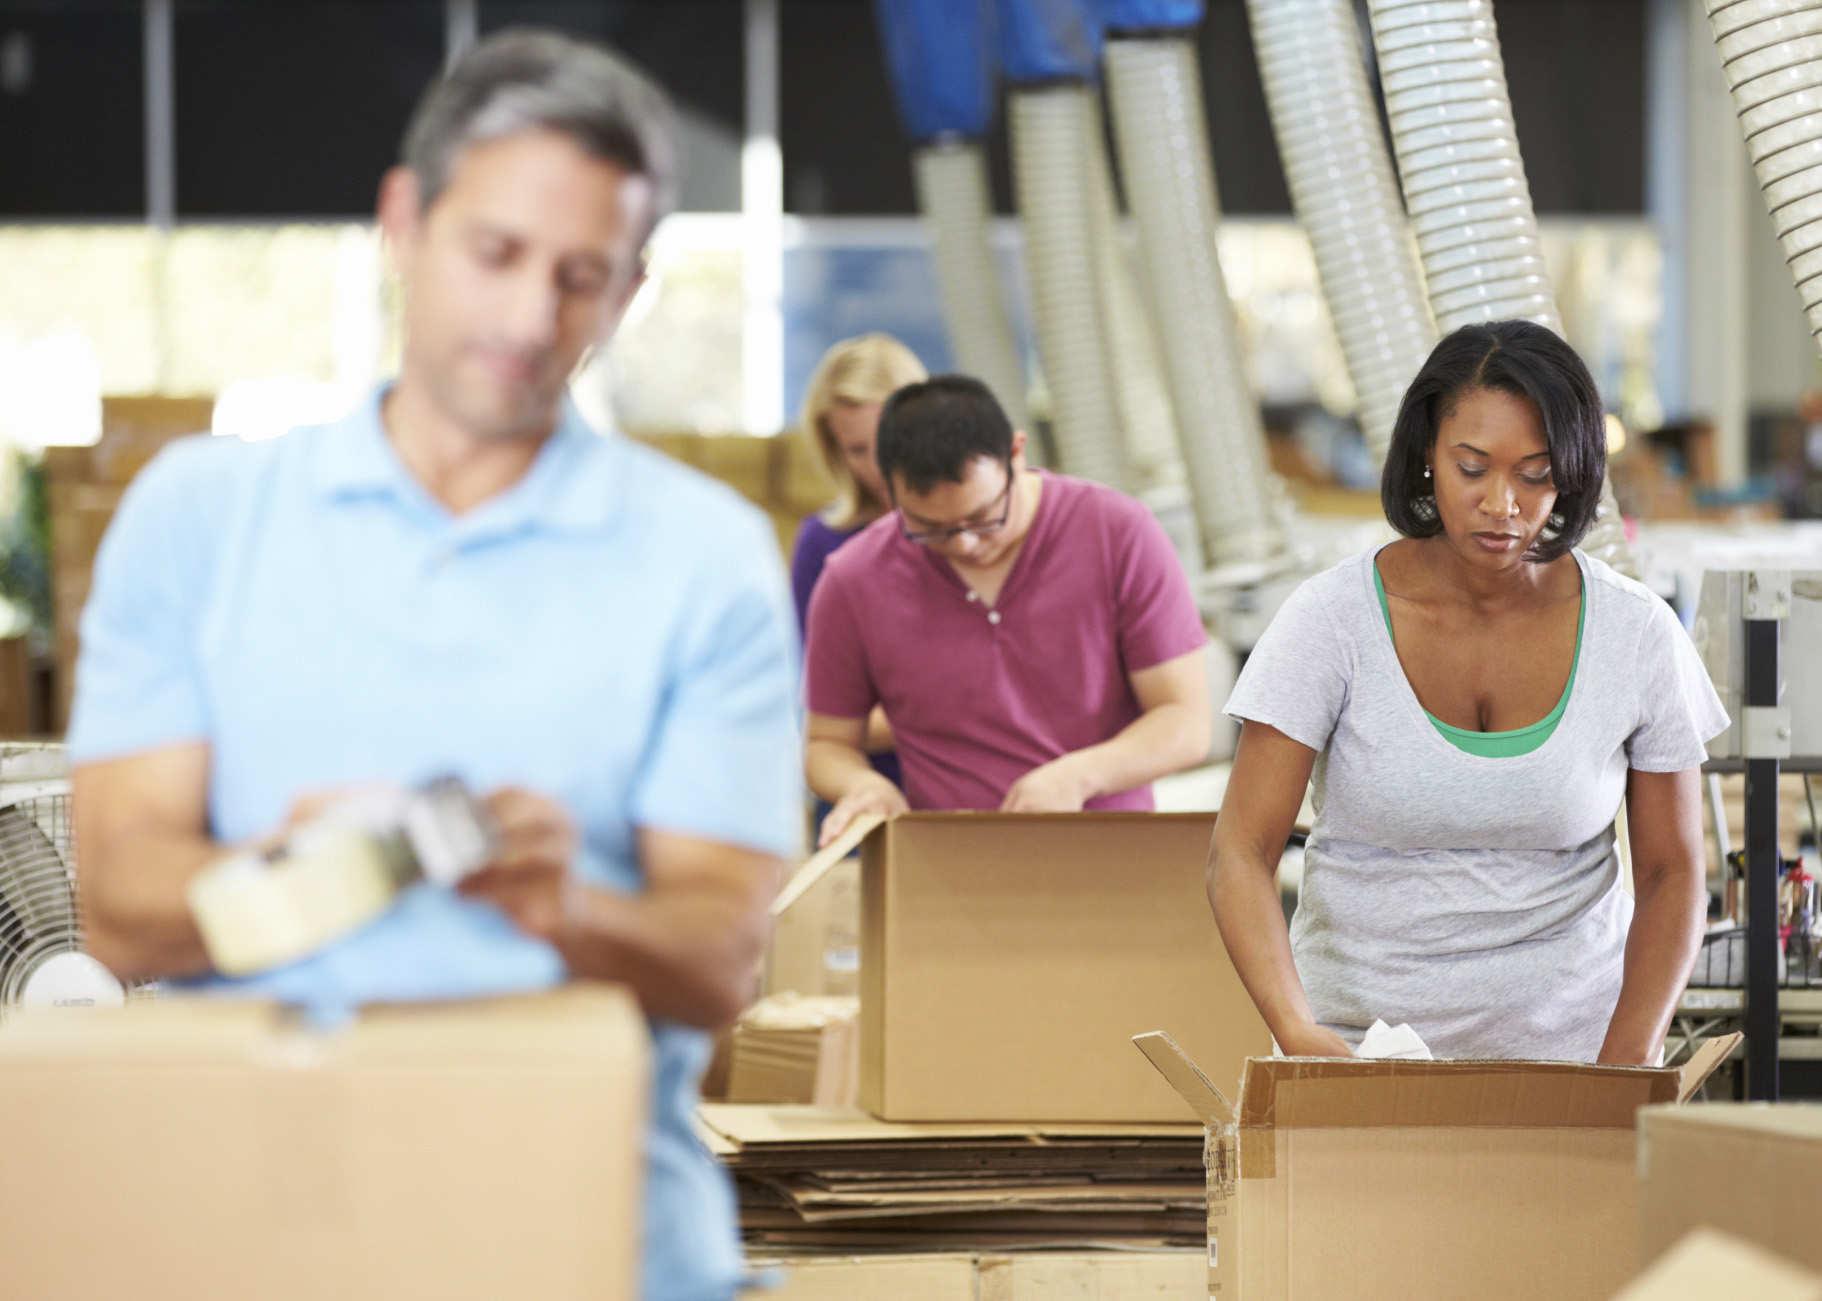 Workers-in-warehouse-with-boxes-crop-ThinkstockPhotos-173314382-monkeybusinessimages